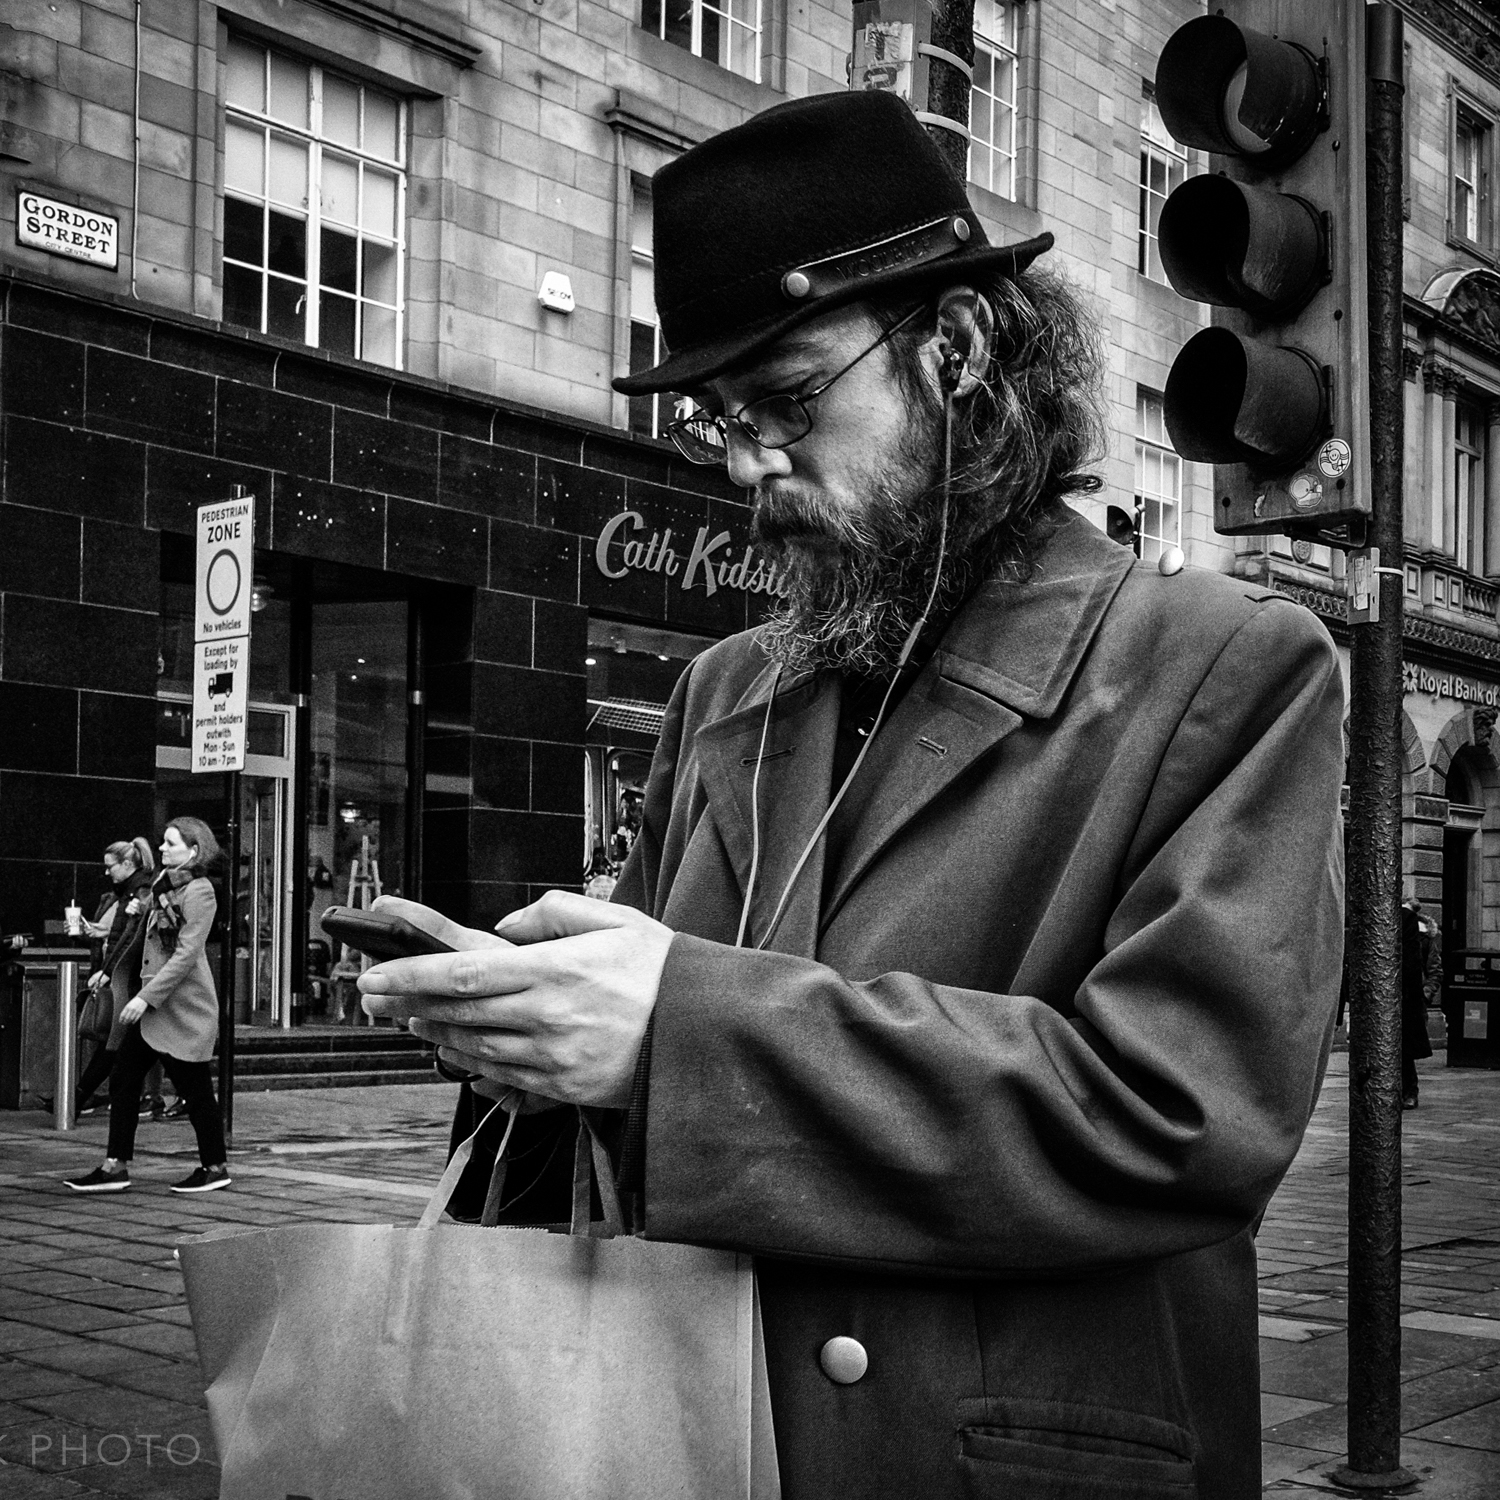 016_35mmStreet-Glasgow-Scotland-Feb-2019.jpg